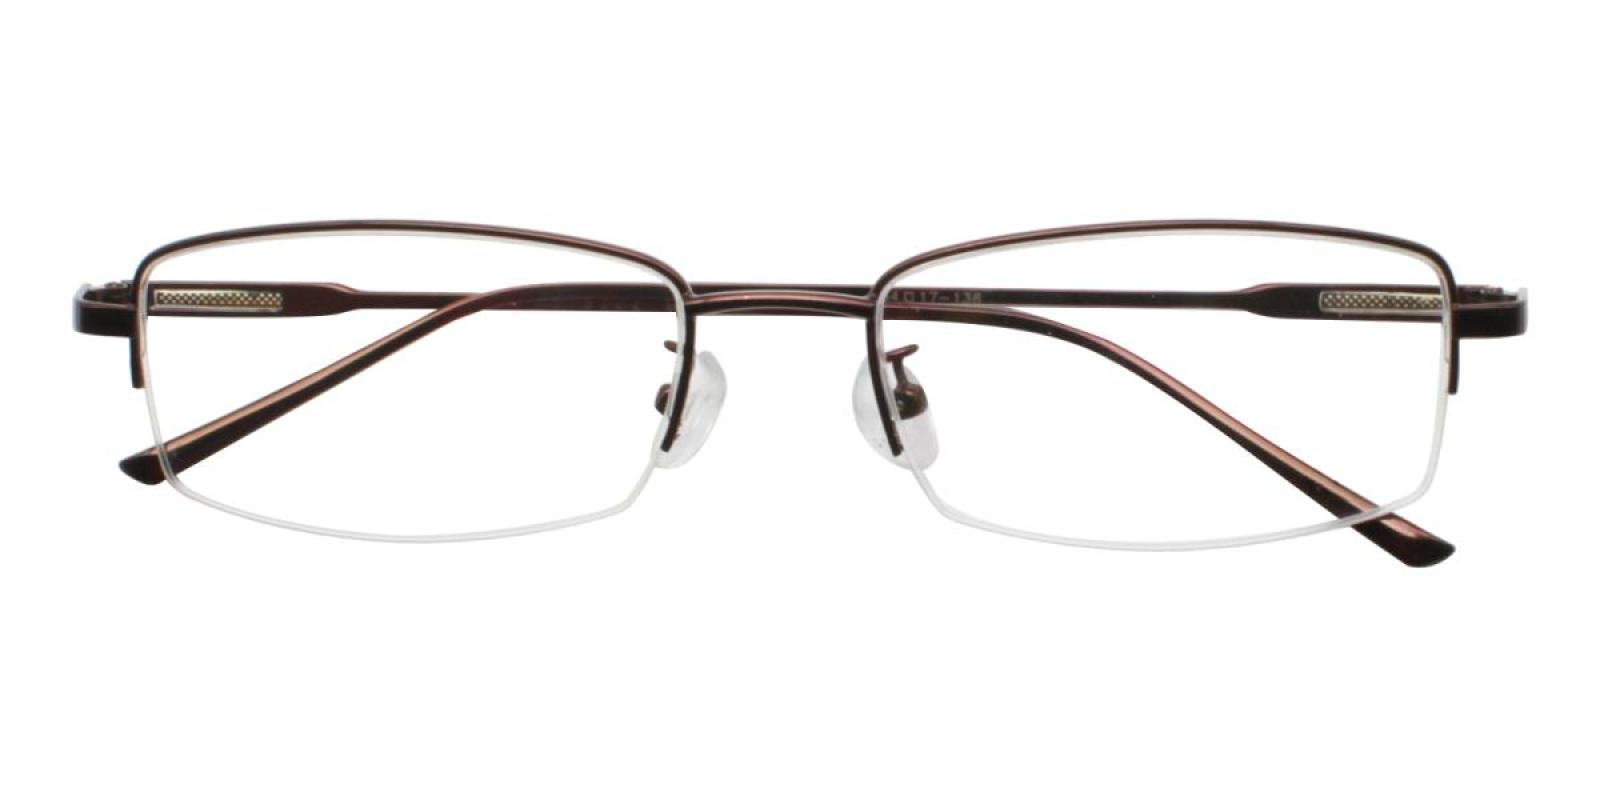 Germantown-Brown-Rectangle-Metal-Eyeglasses-detail